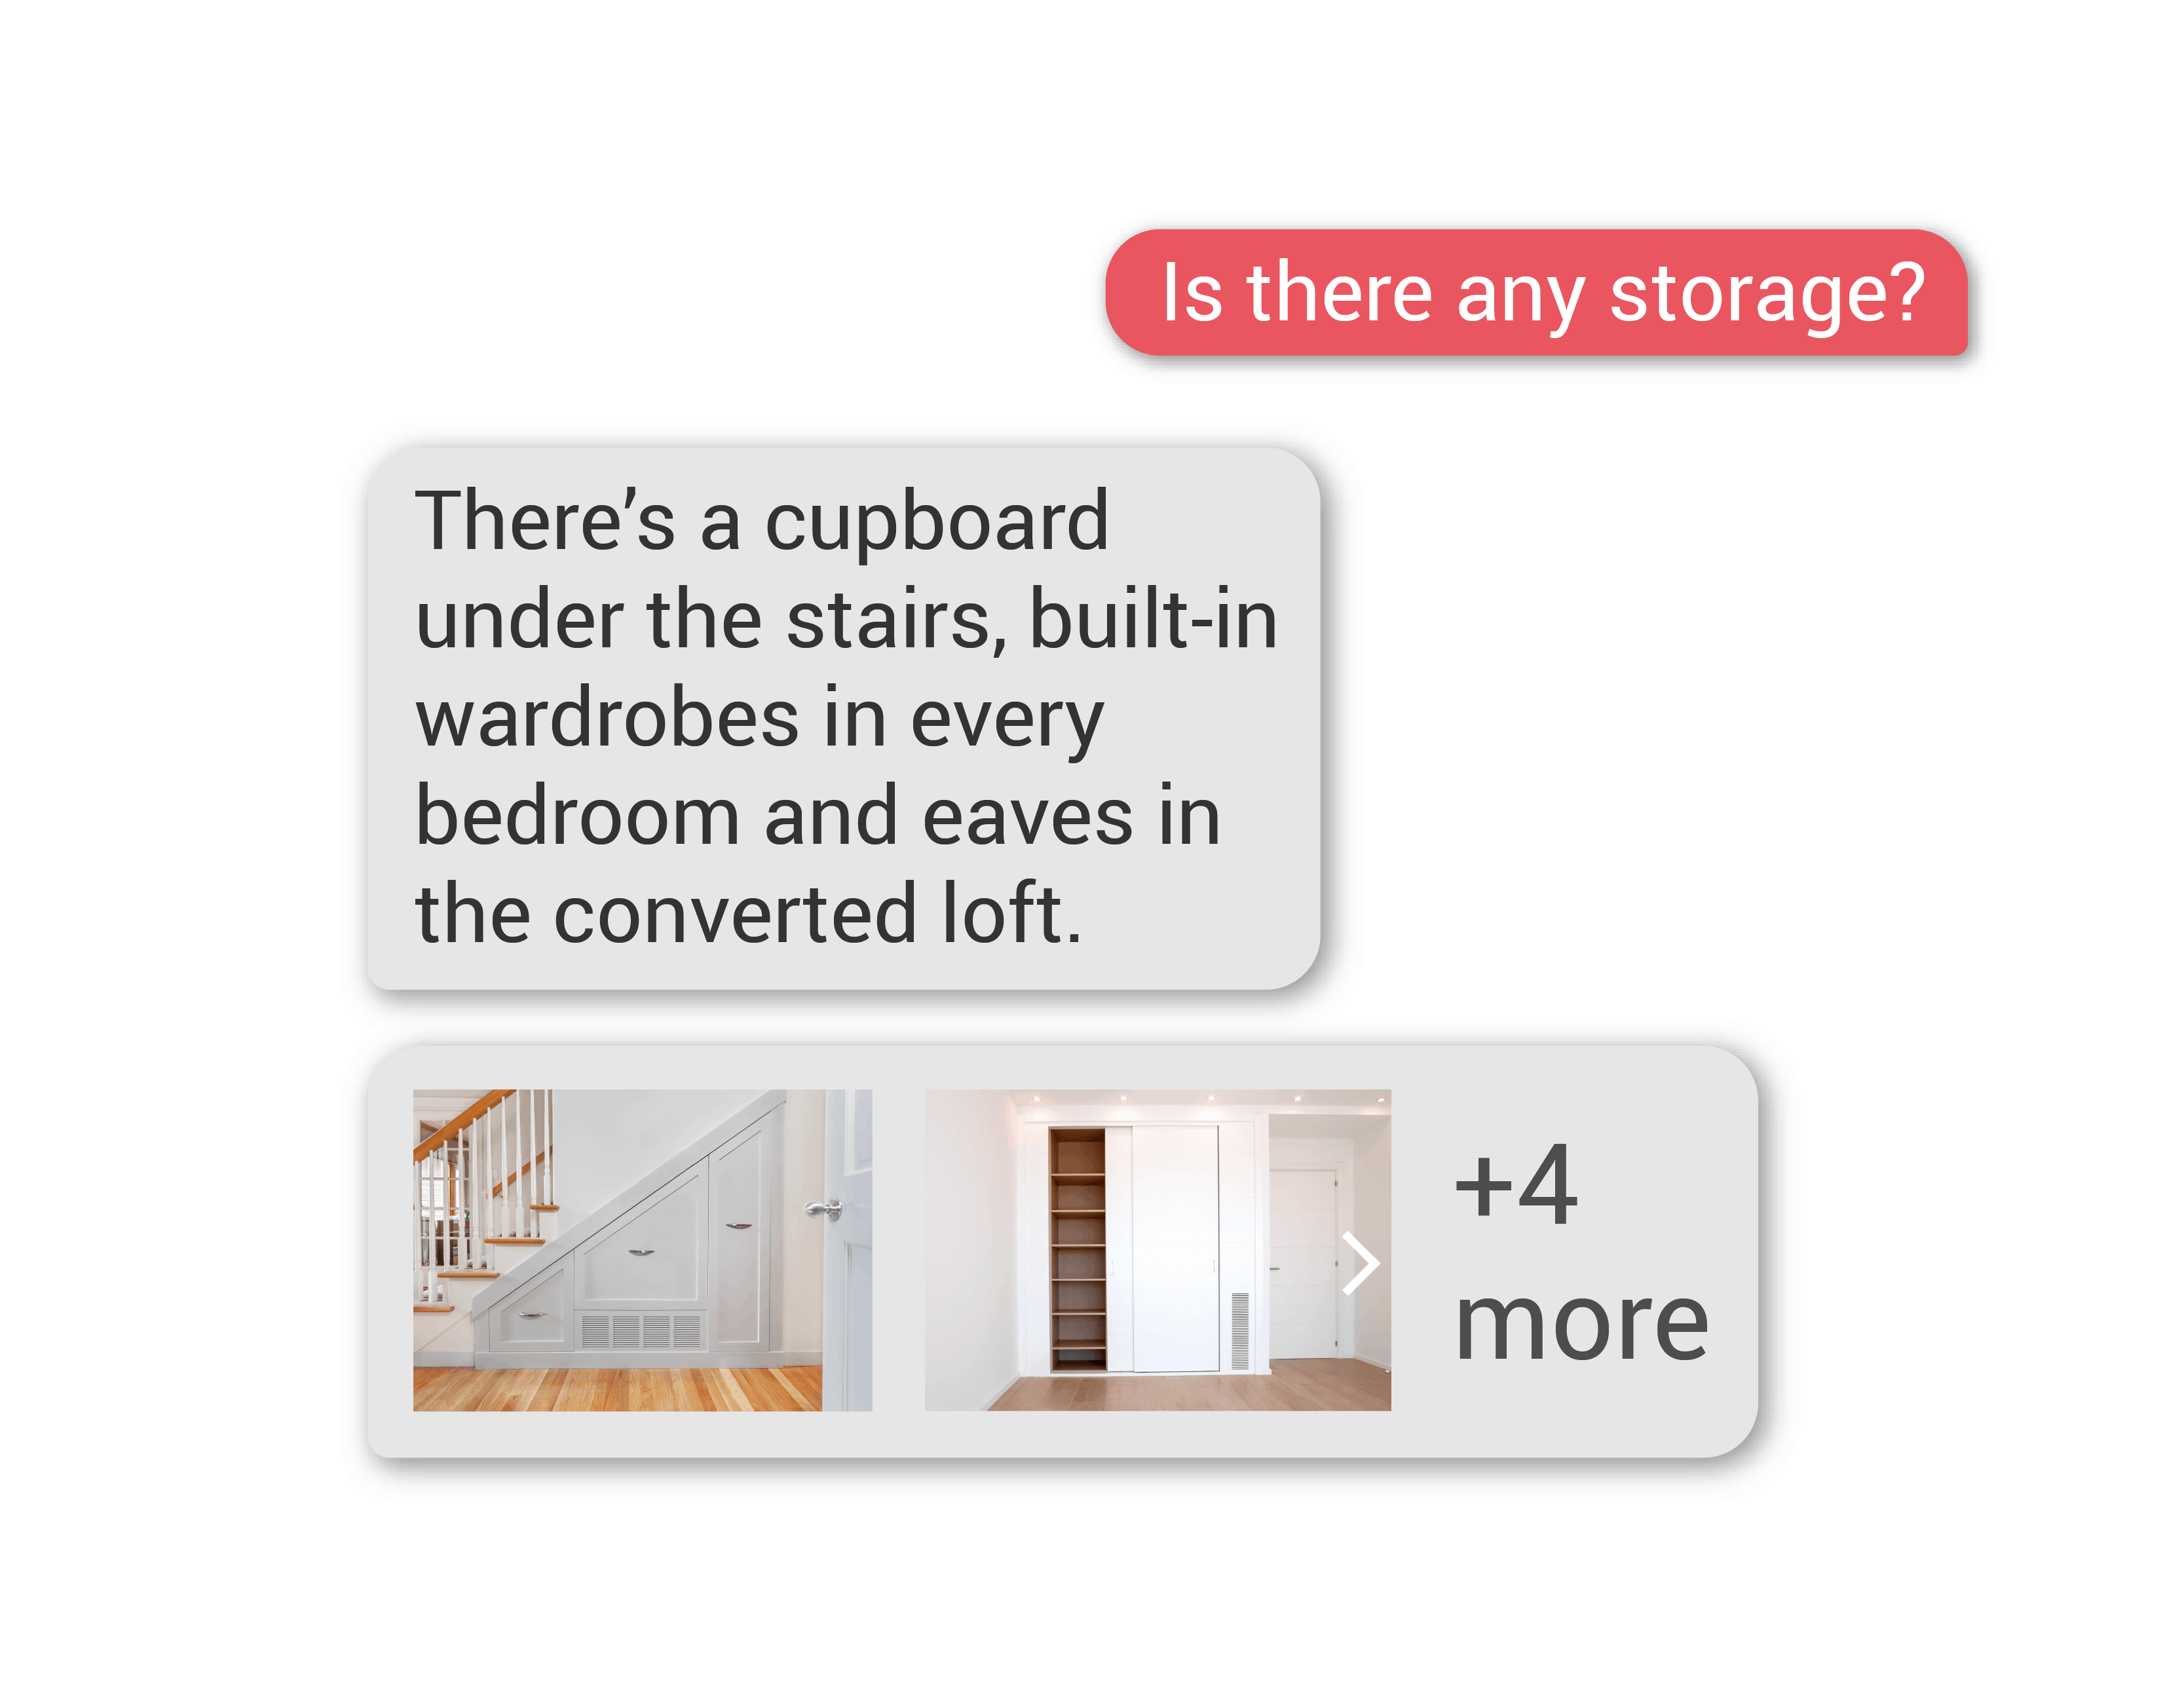 Property sales: storage queries answered by an AI assistant